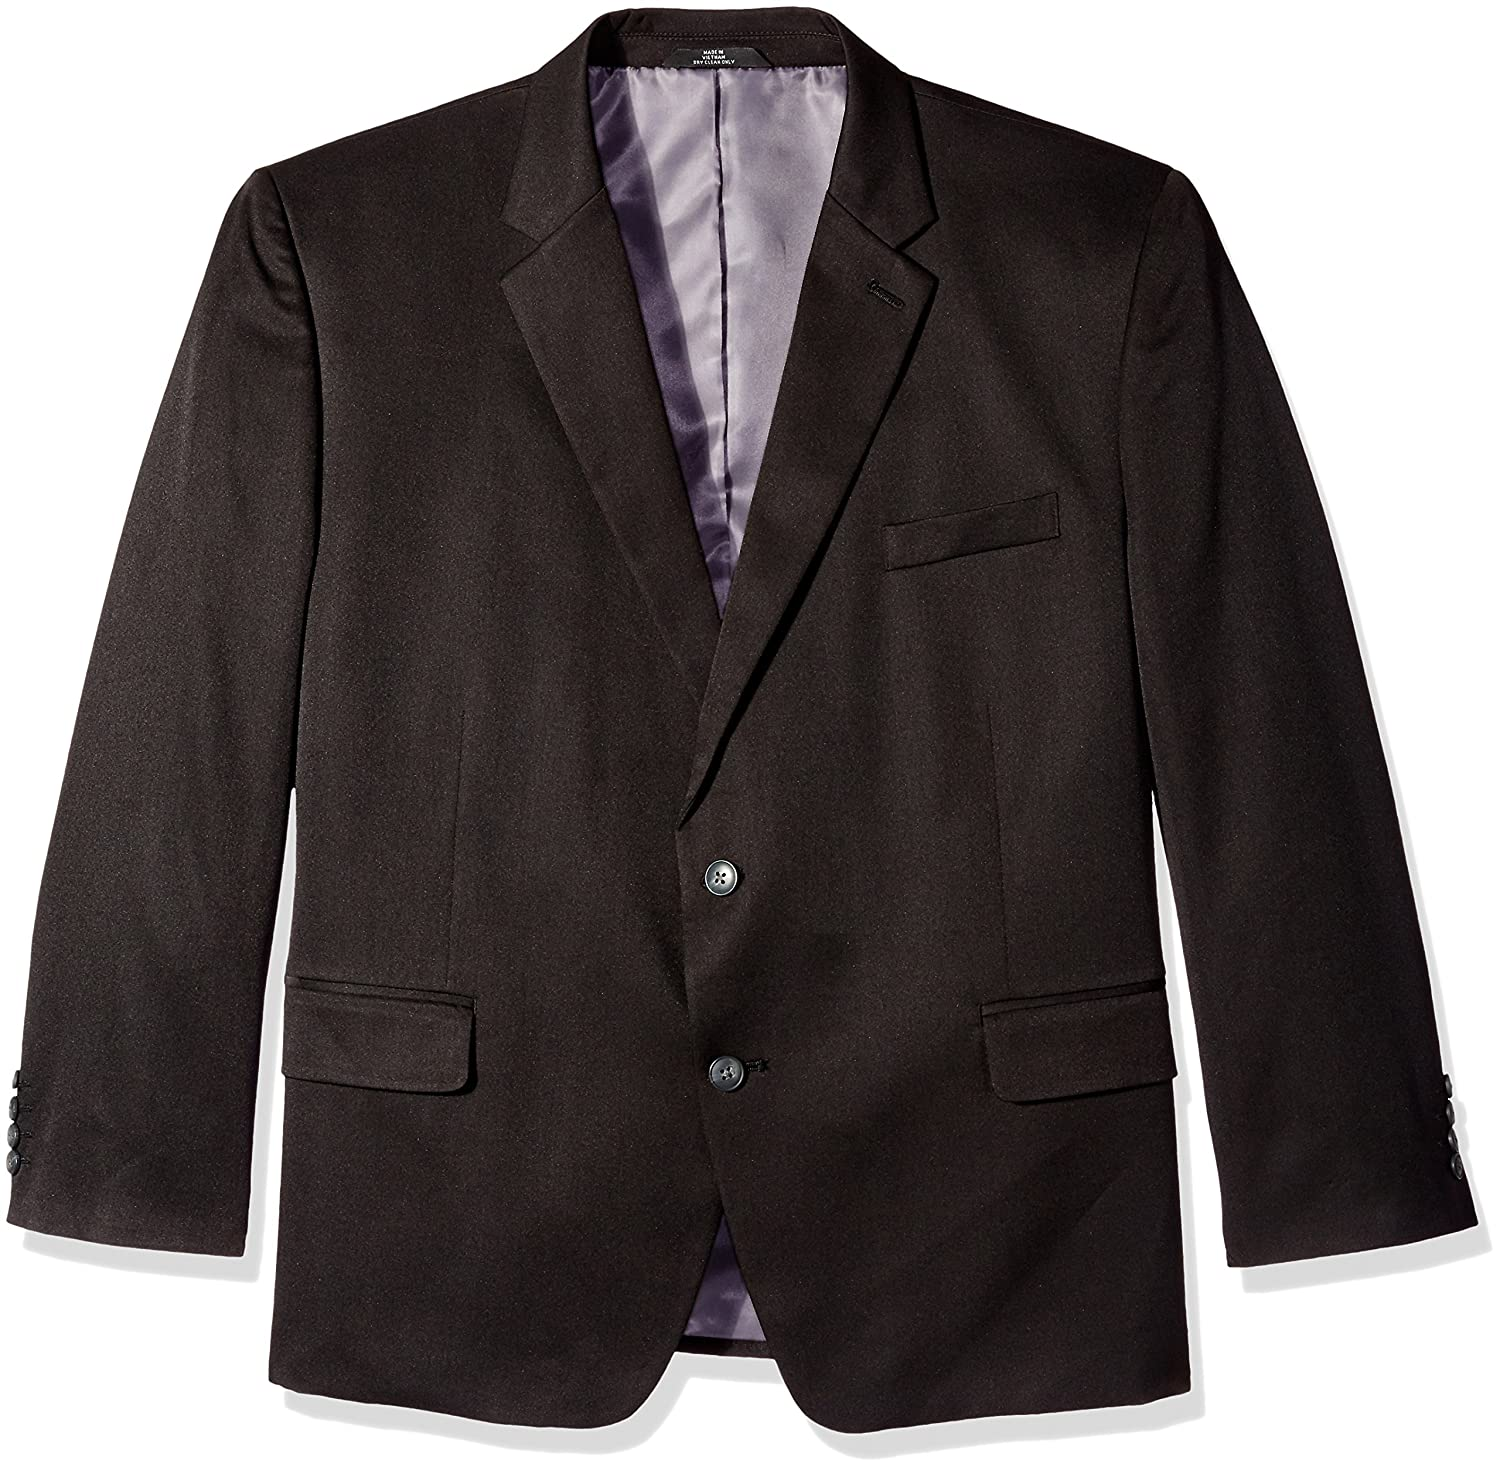 Haggar Men's Big & Tall Travel Performance Heather 2-Button Classic Fit Suit Separate Coat Haggar Men's Tailored HZ90276